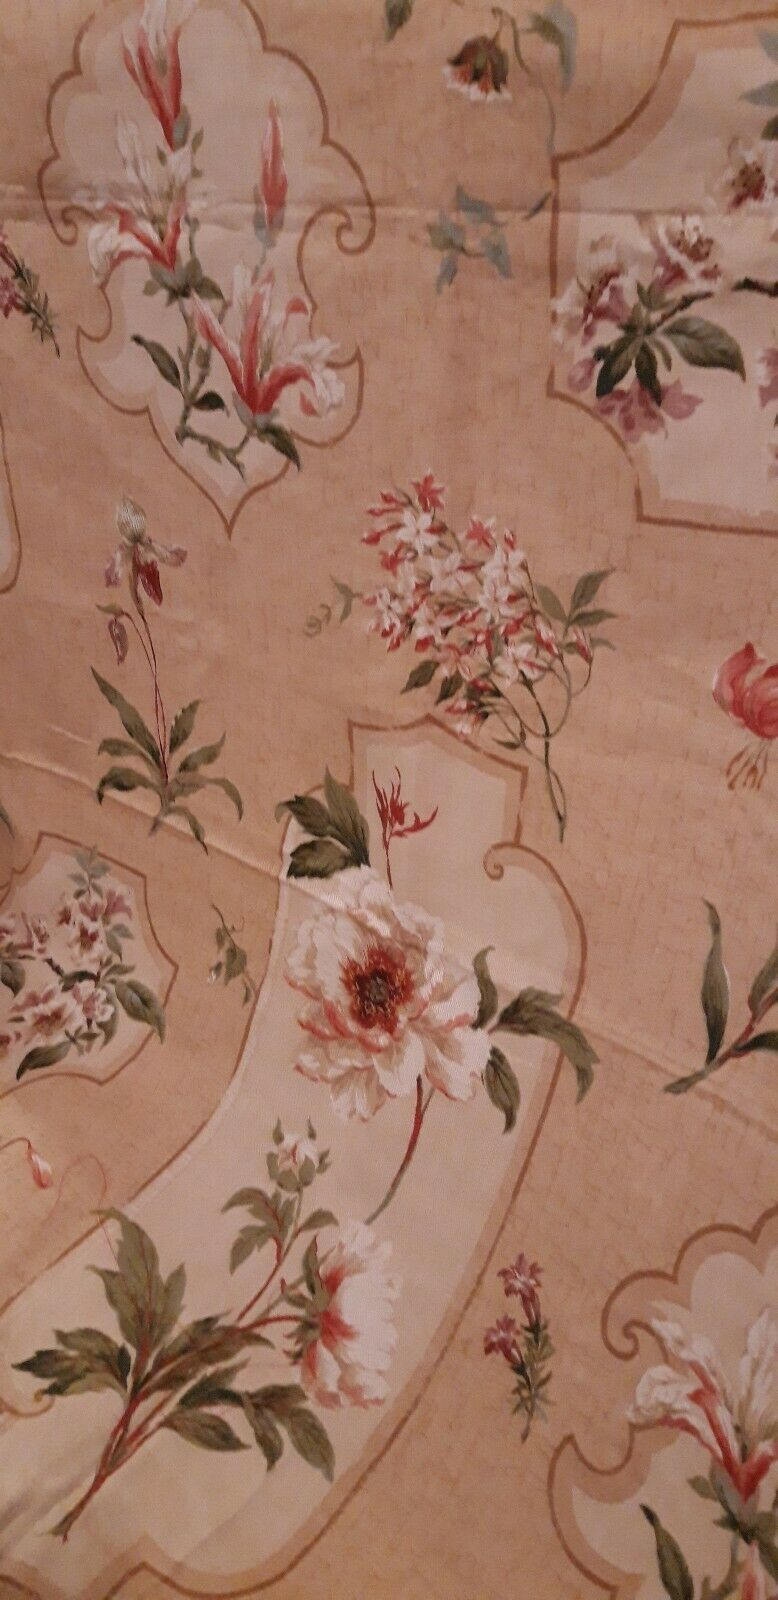 Colefax and fowler Peony Cartouche fabric L57 x W56 inches